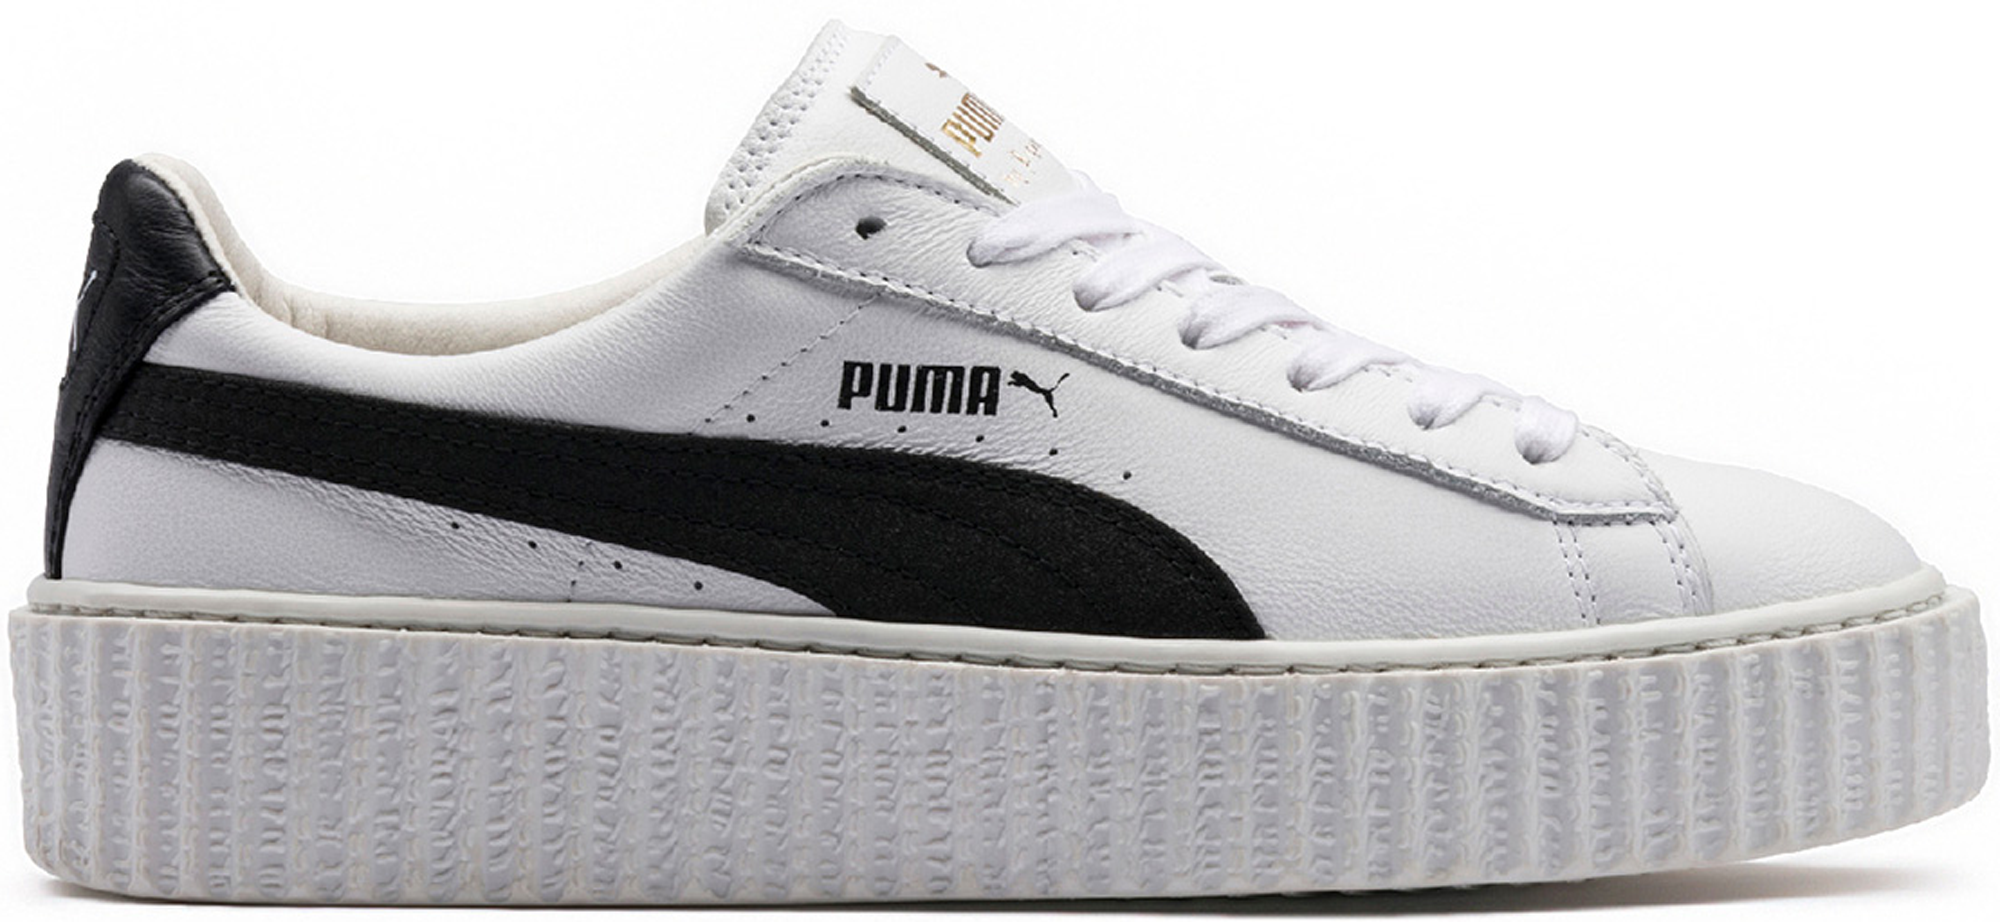 Rihanna x Puma Creeper Fenty Leather White Black - StockX News 64ba5b8168bf